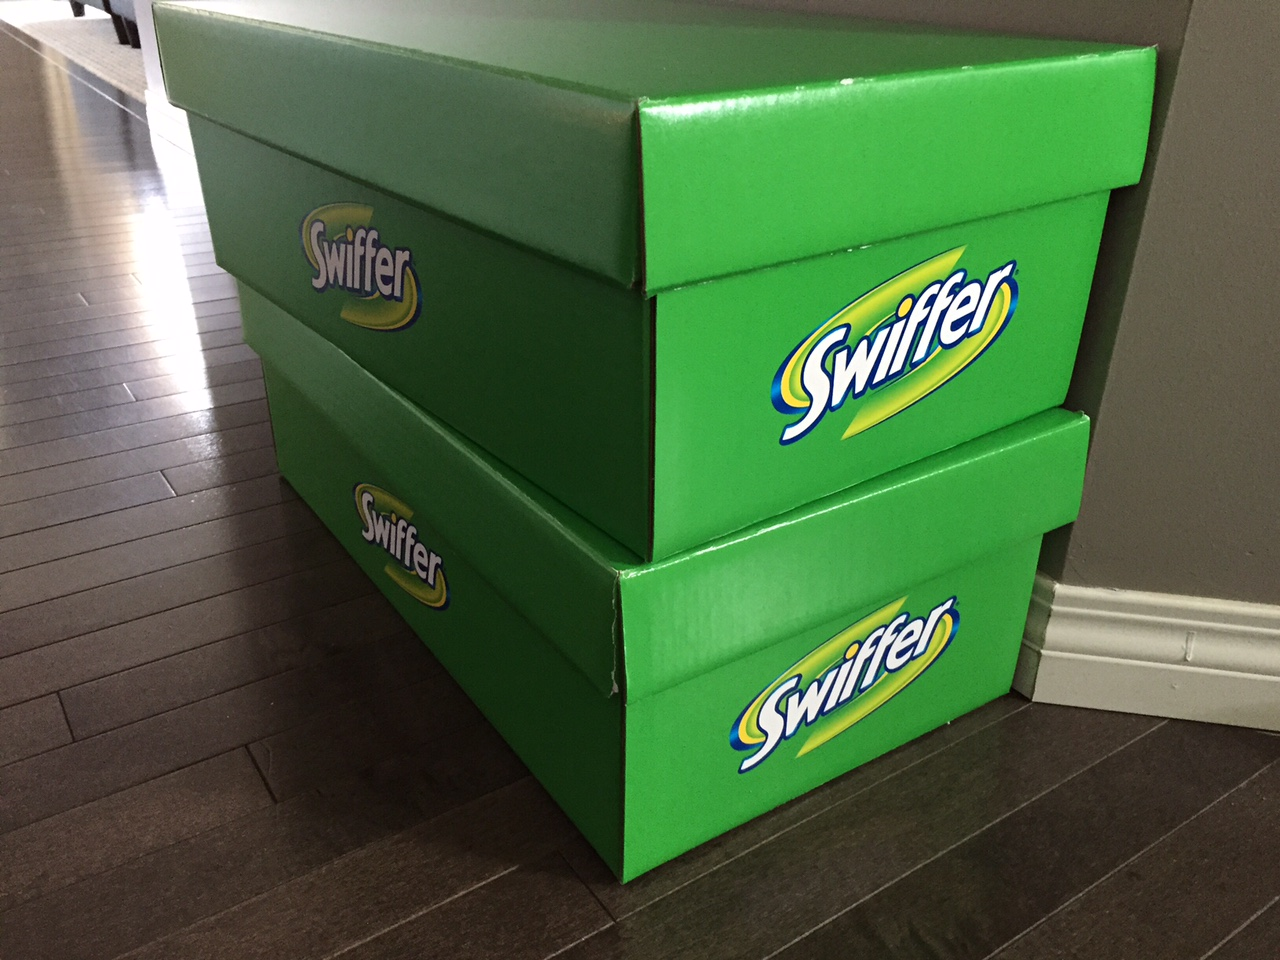 Swiffer boxes!